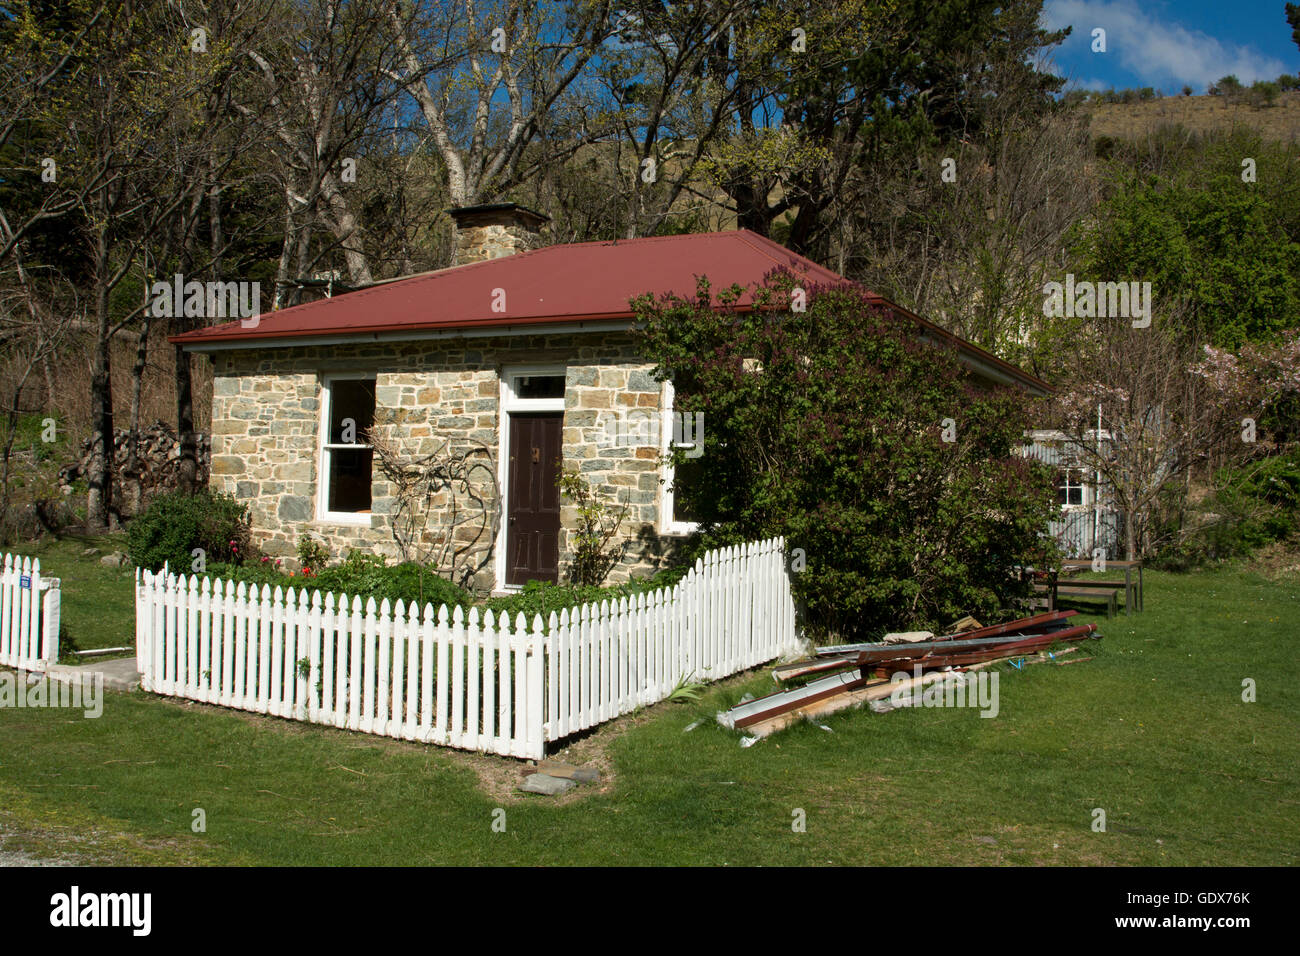 This miner's cottage is a reminiscent of the big Otago Gold Rush in New Zealand starting in the end of May 1861. - Stock Image